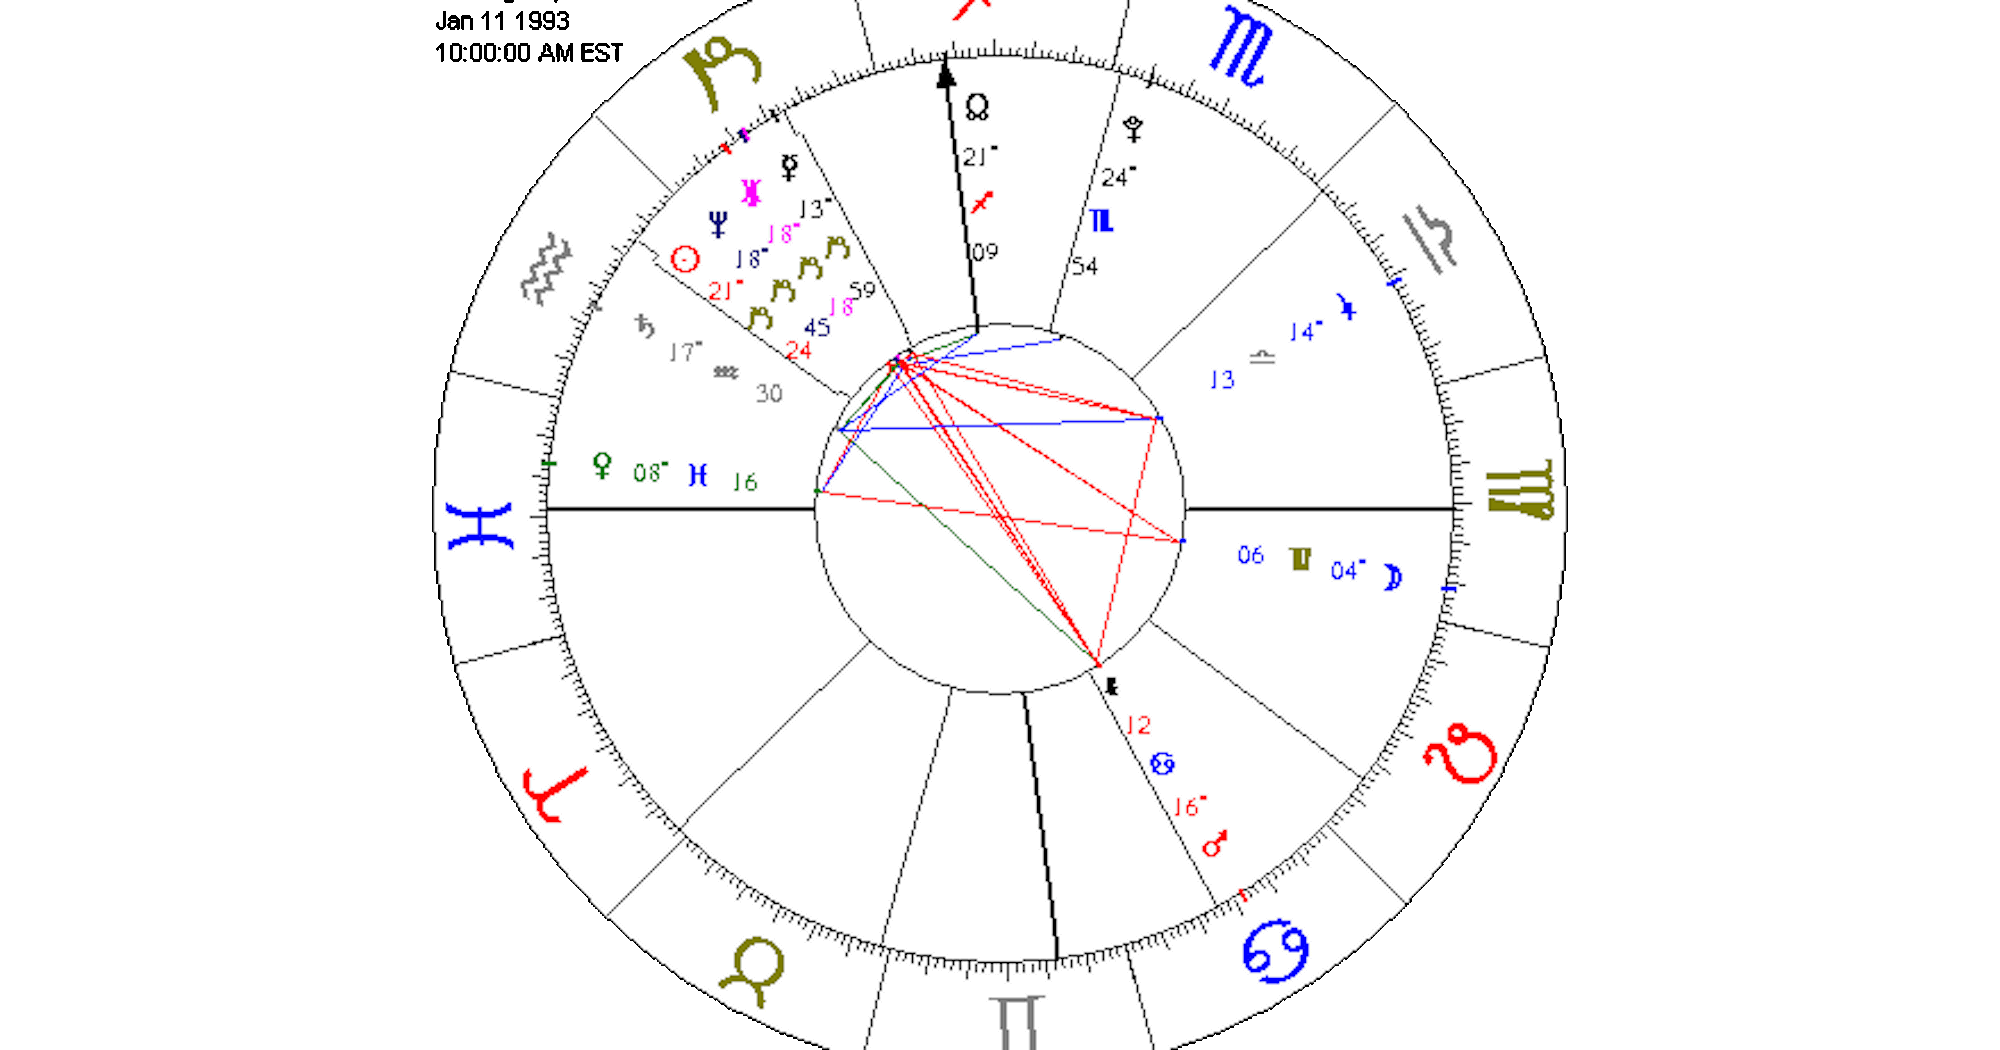 Astrology birth chart analysis how to read natal chart geenschuldenfo Choice Image